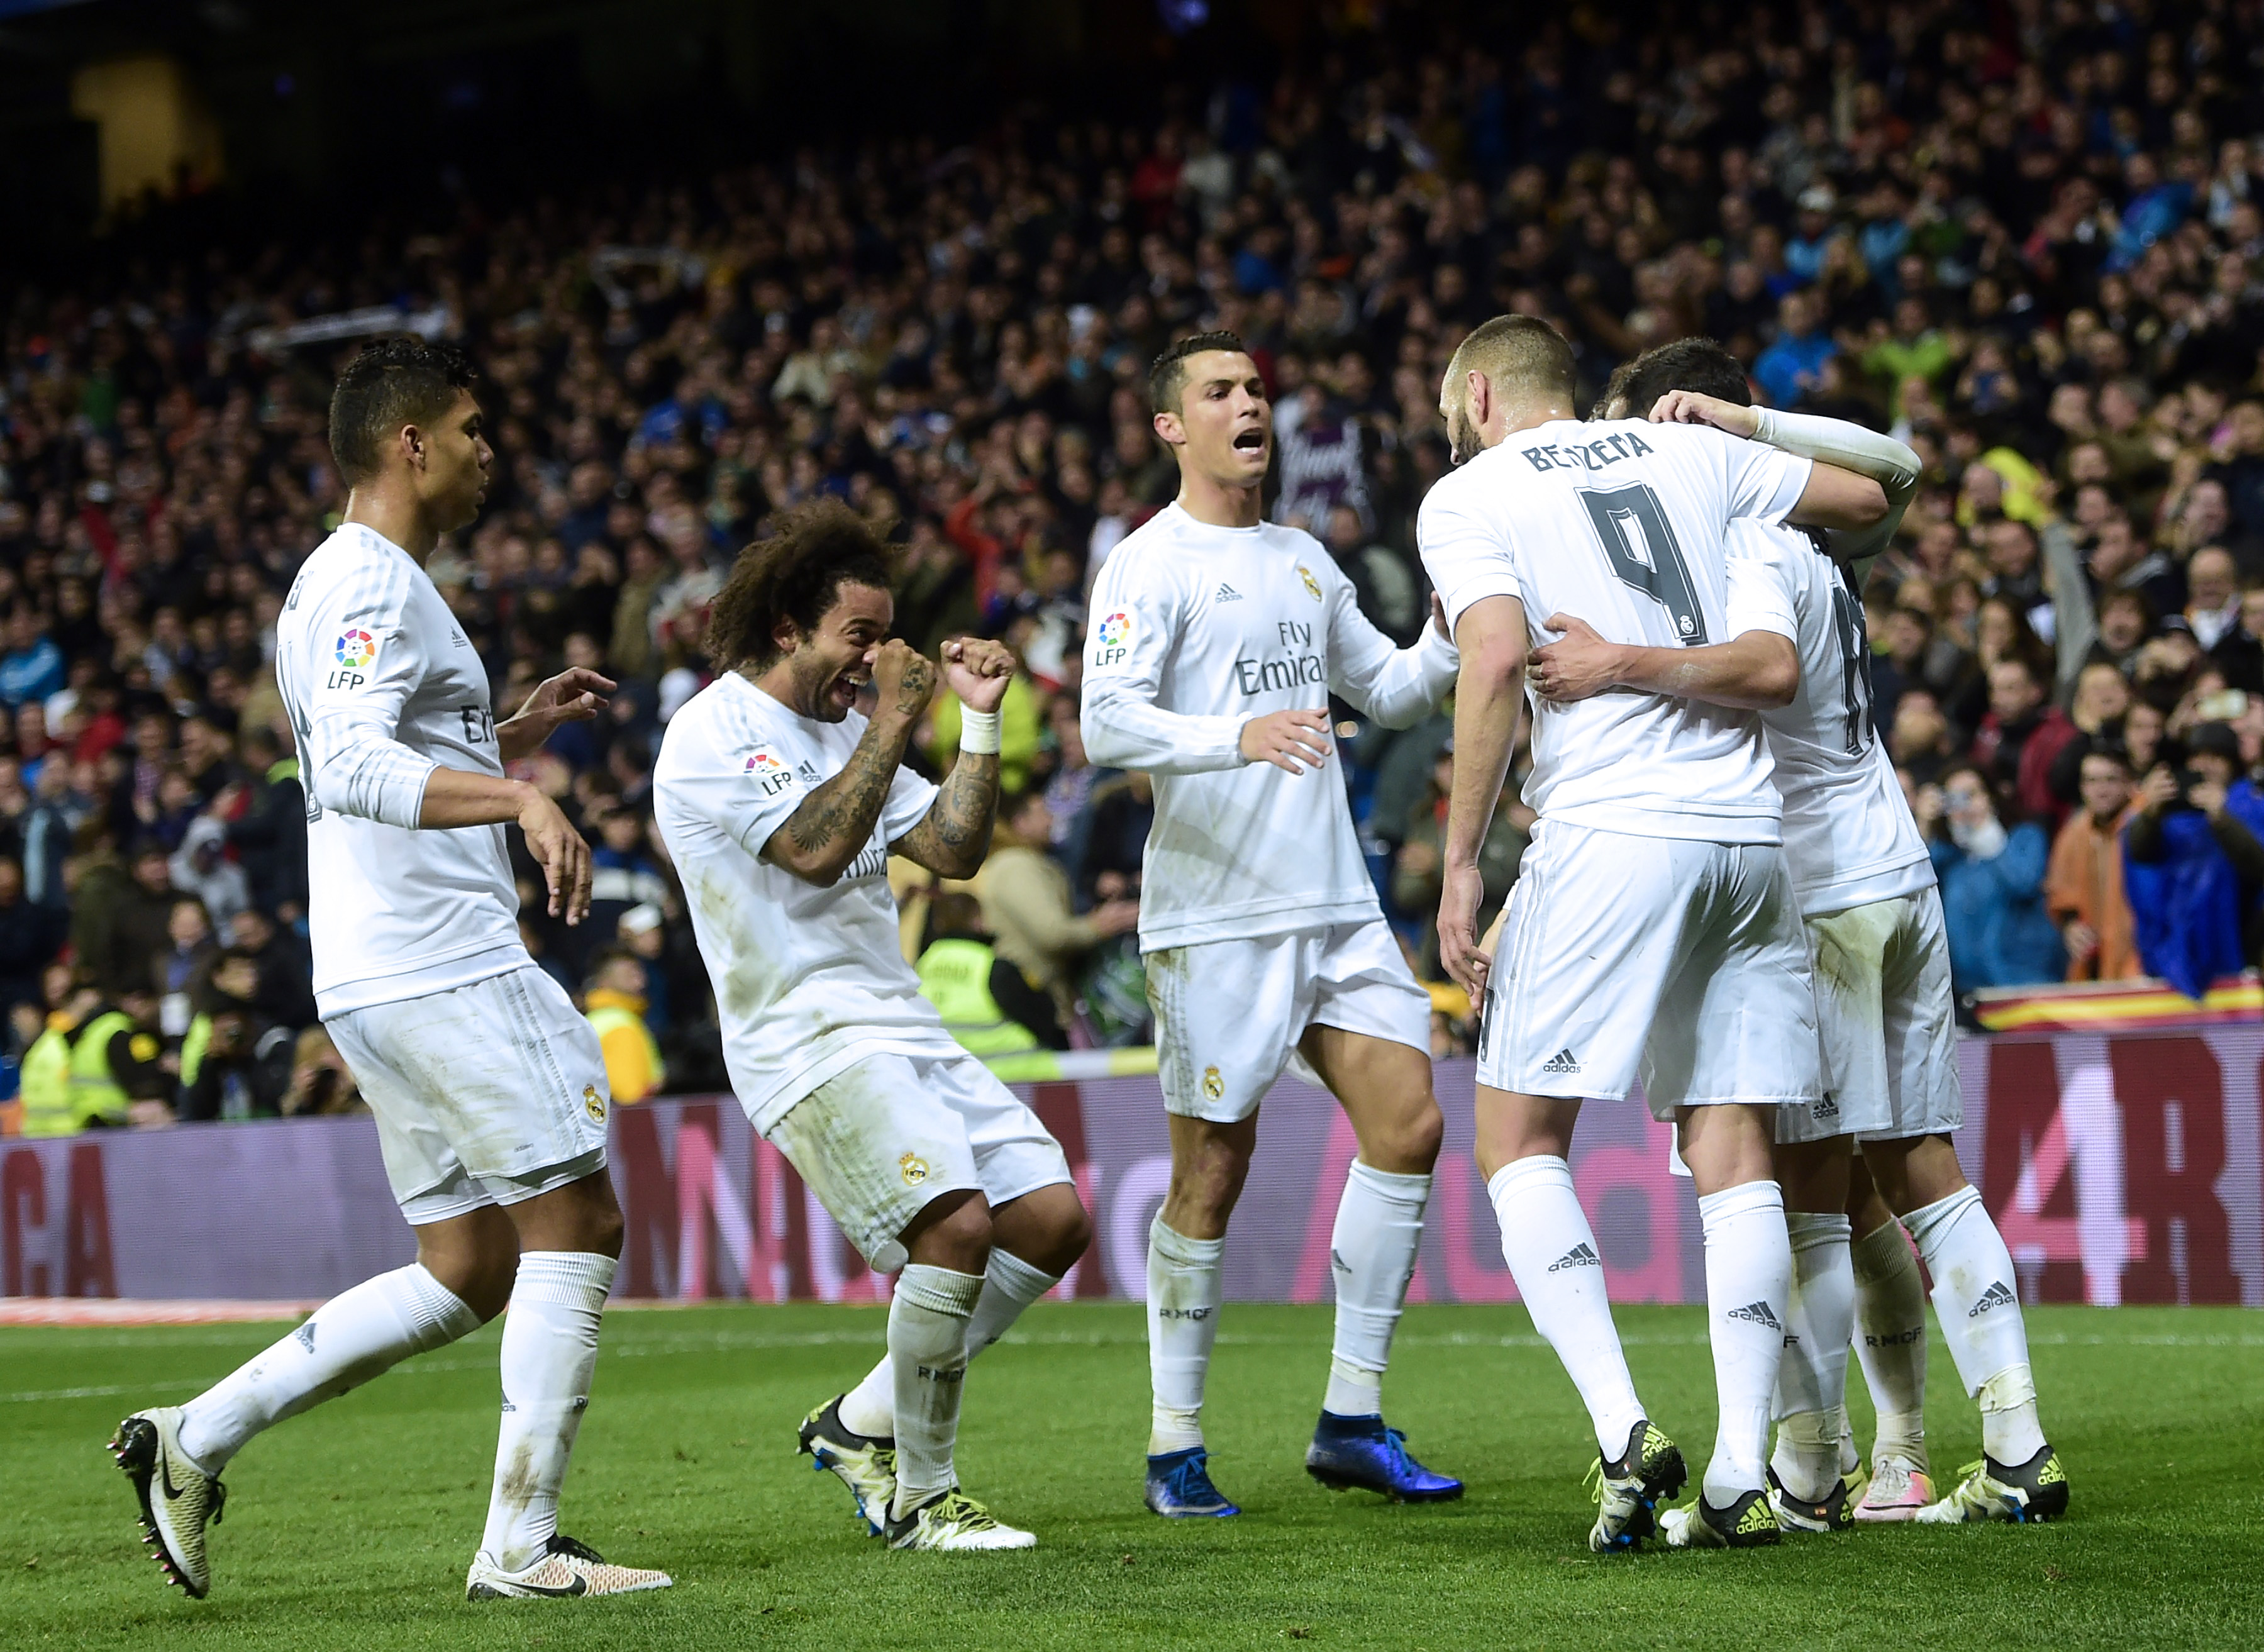 Real Madrid's players celebrate a goal during the Spanish league football match Real Madrid vs Villarreal at the Santiago Bernabeu stadium in Madrid on April 20, 2016. / AFP PHOTO / PIERRE-PHILIPPE MARCOU